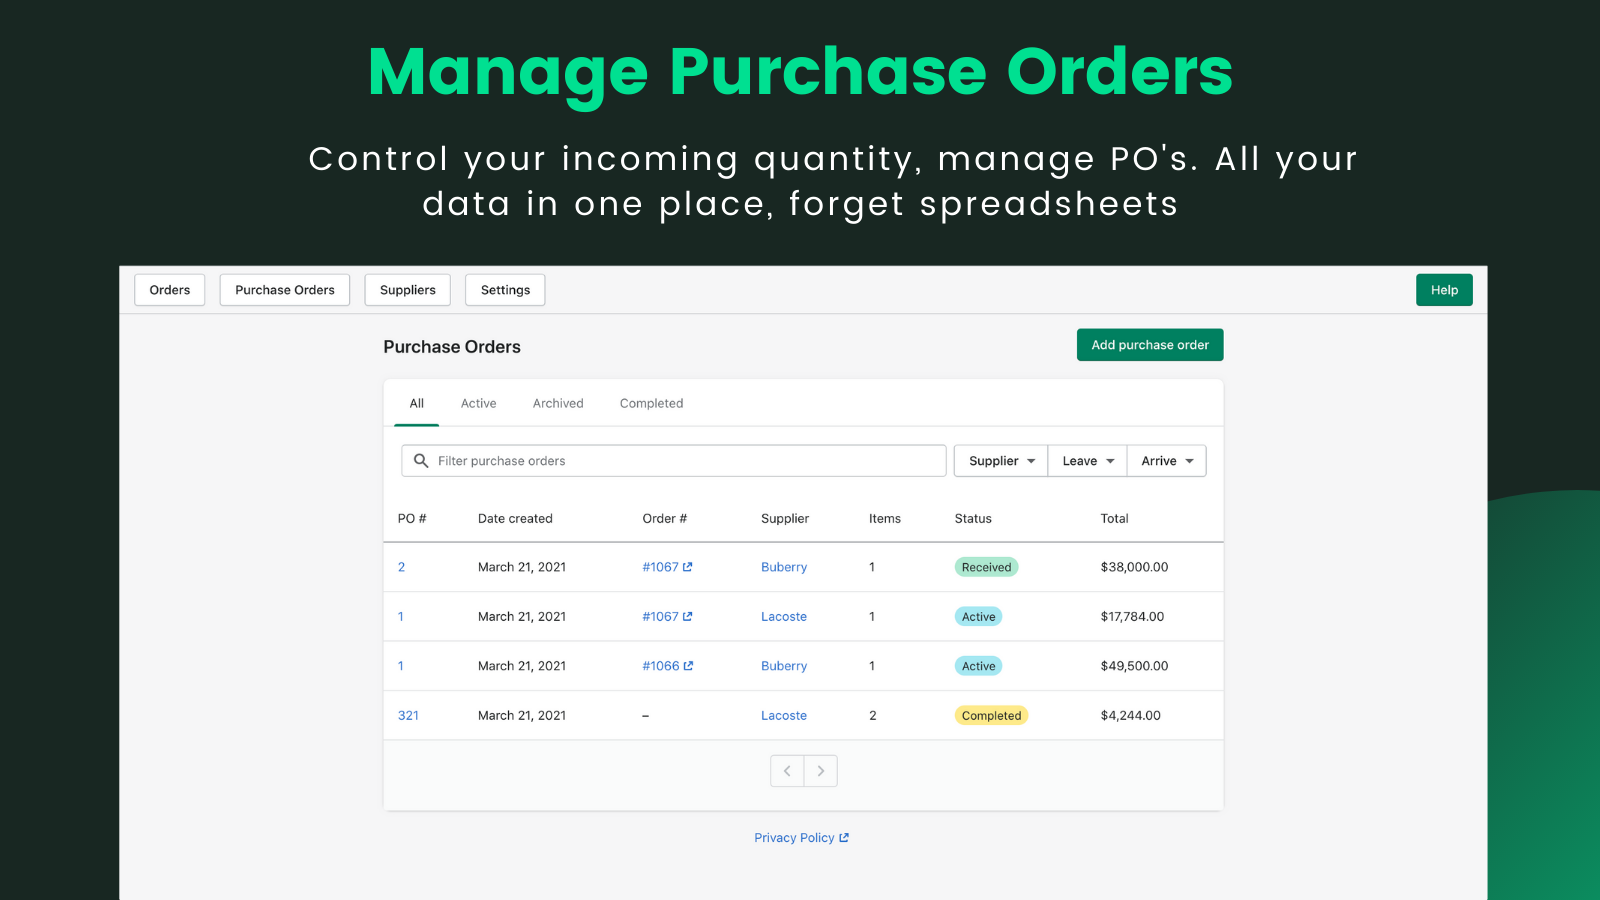 Manage Purchase Orders in single place, take control